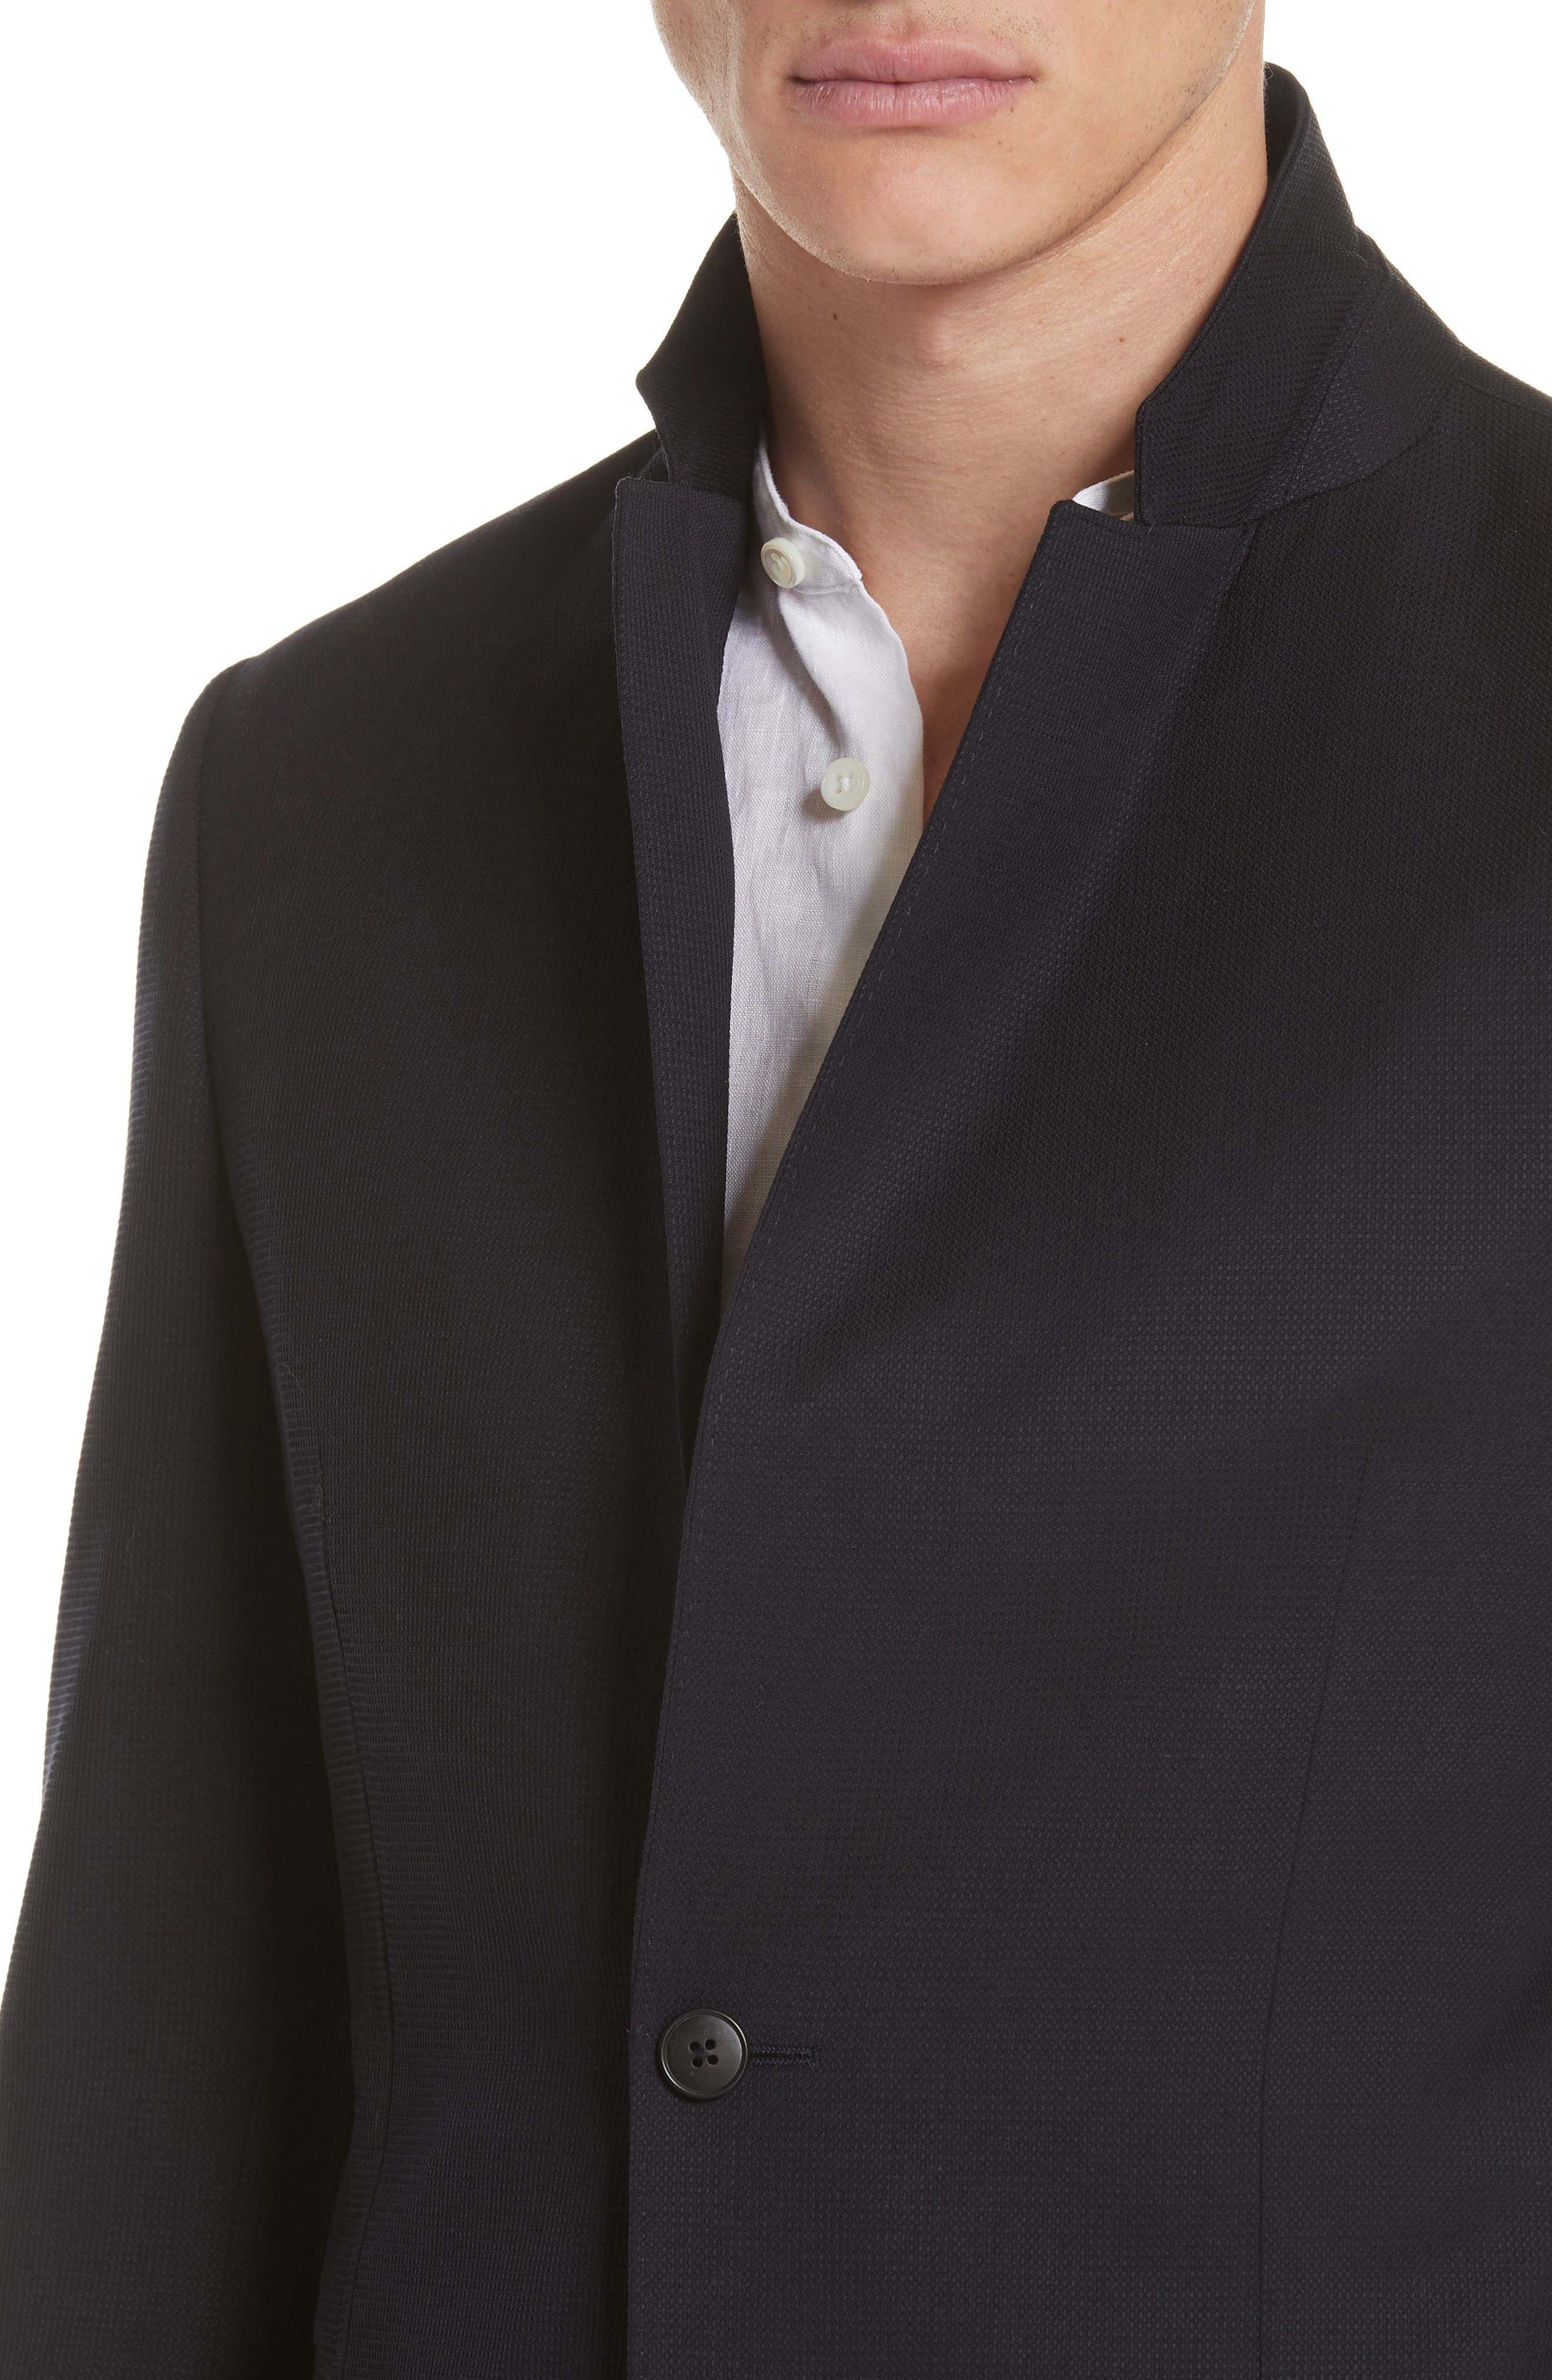 TECHMERINO<sup>™</sup> Wash & Go Classic Fit Wool Blazer,                             Alternate thumbnail 4, color,                             Navy Solid